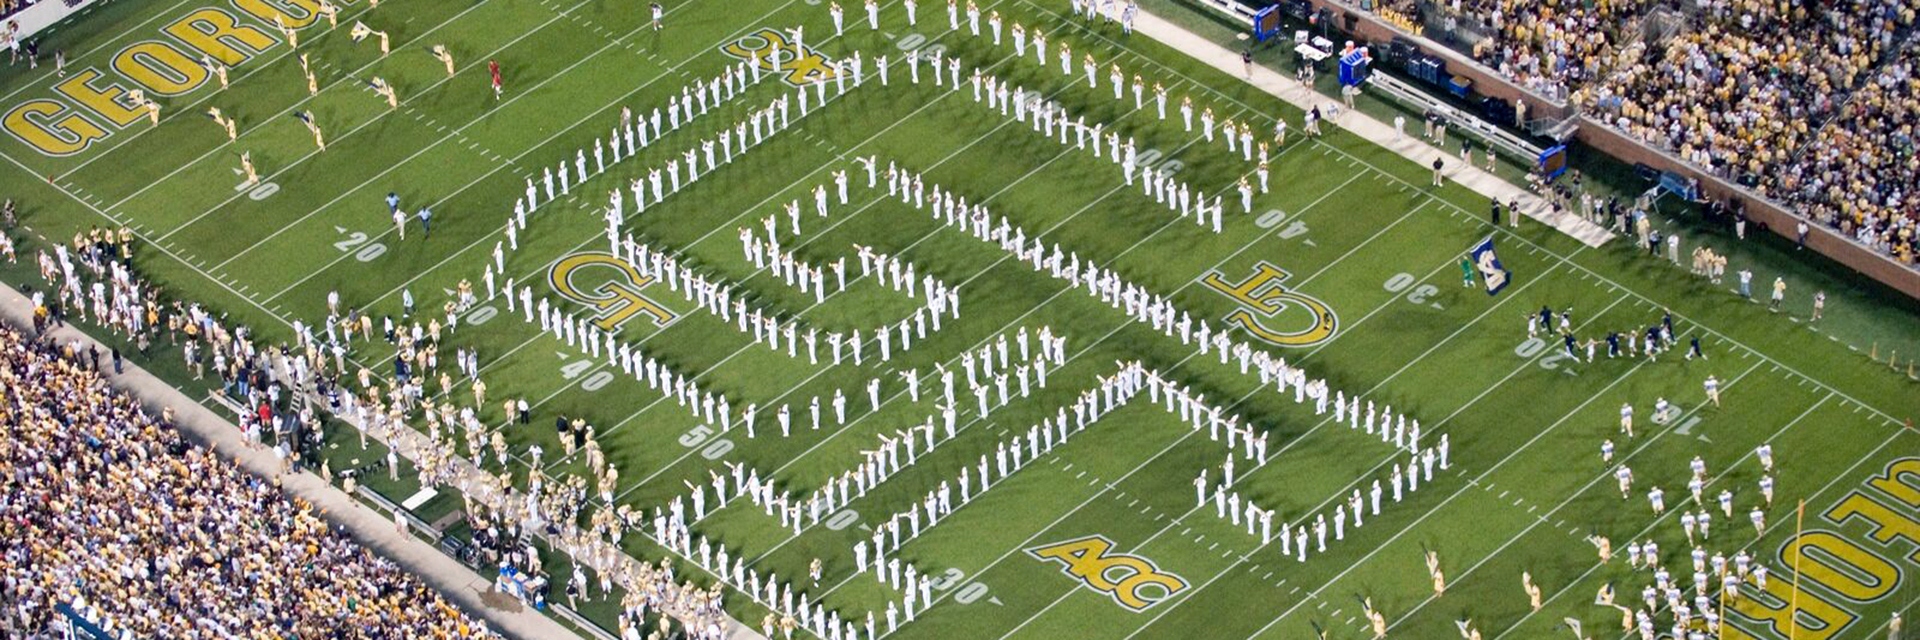 The Marching Band in formation at a football game.